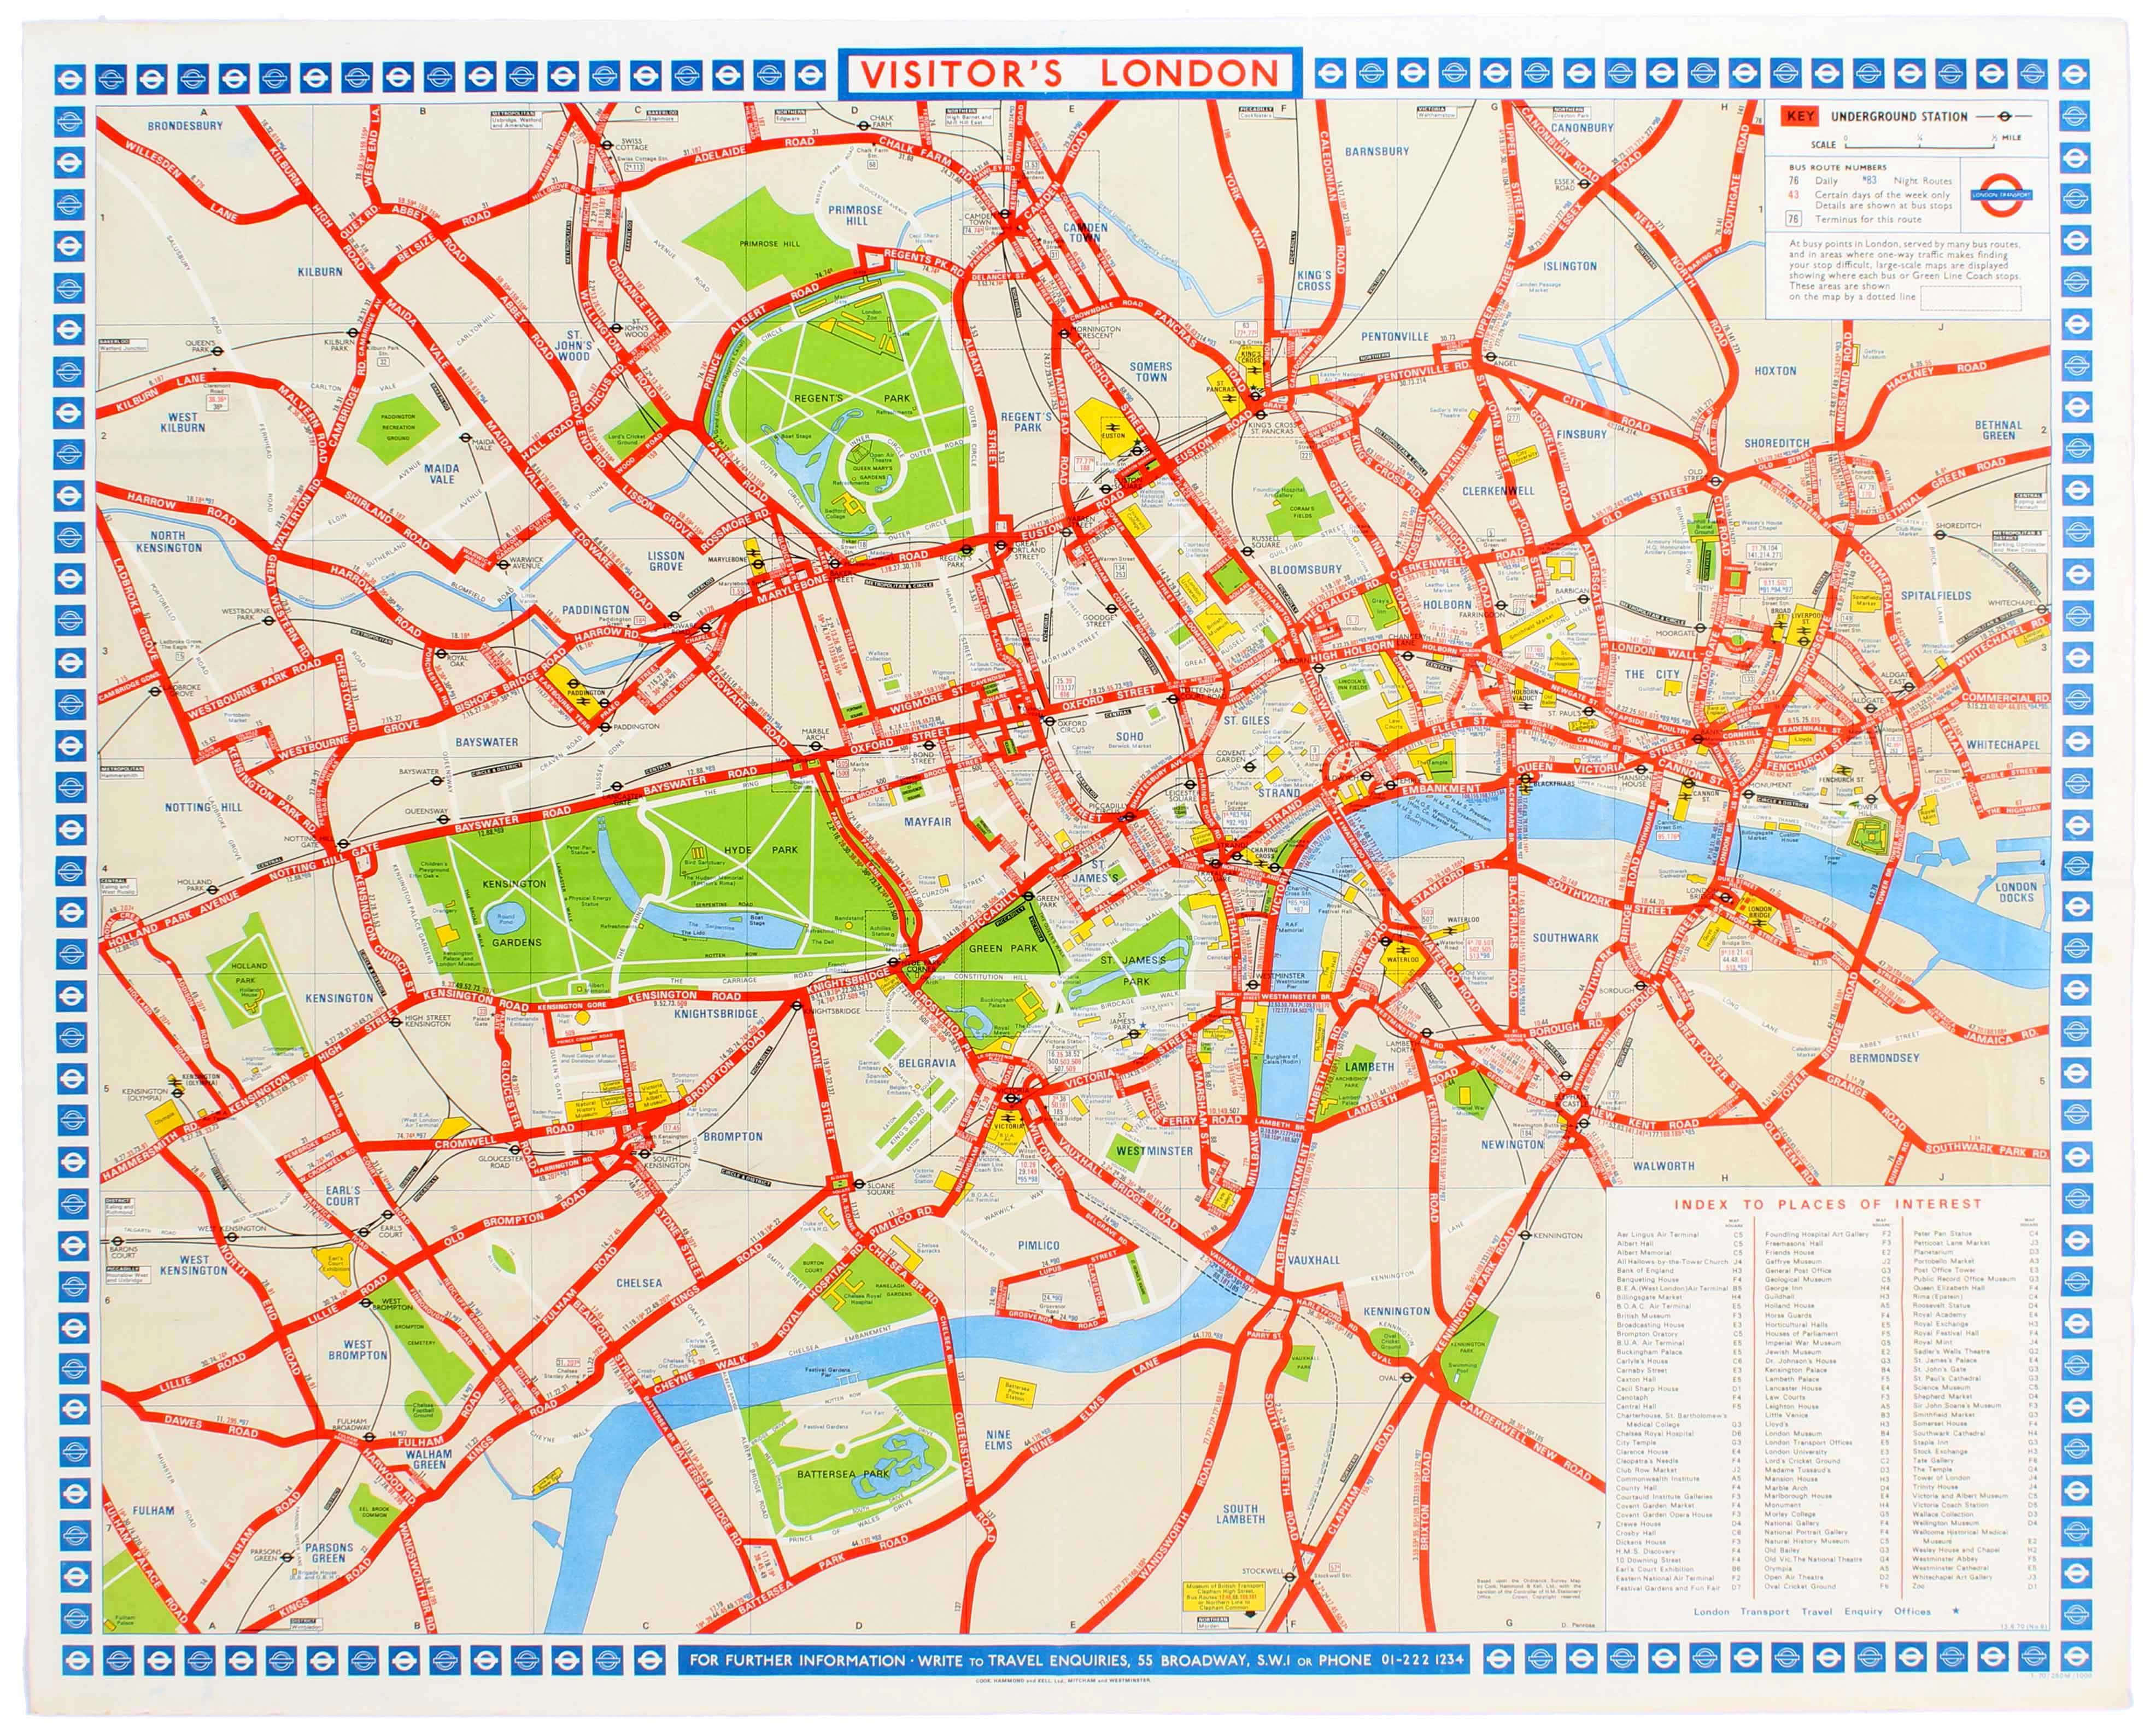 Visitors Map Of London.Original Vintage Travel Advertising Poster Depicting A Tourist Map